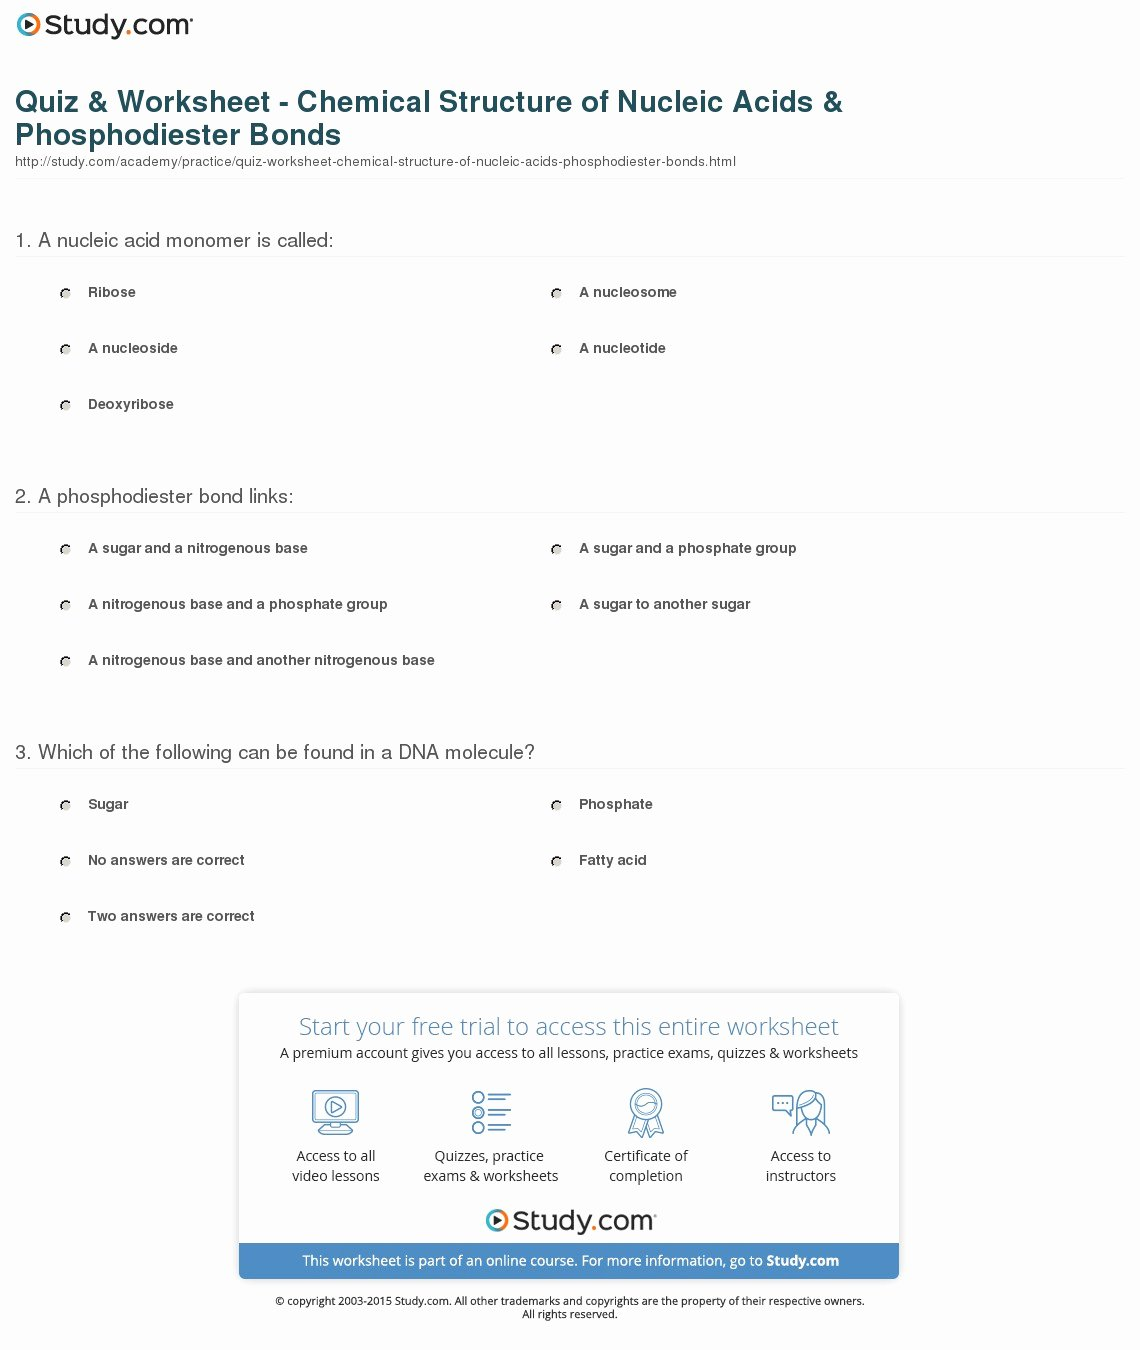 Nucleic Acids Worksheet Answers Best Of Quiz & Worksheet Chemical Structure Of Nucleic Acids